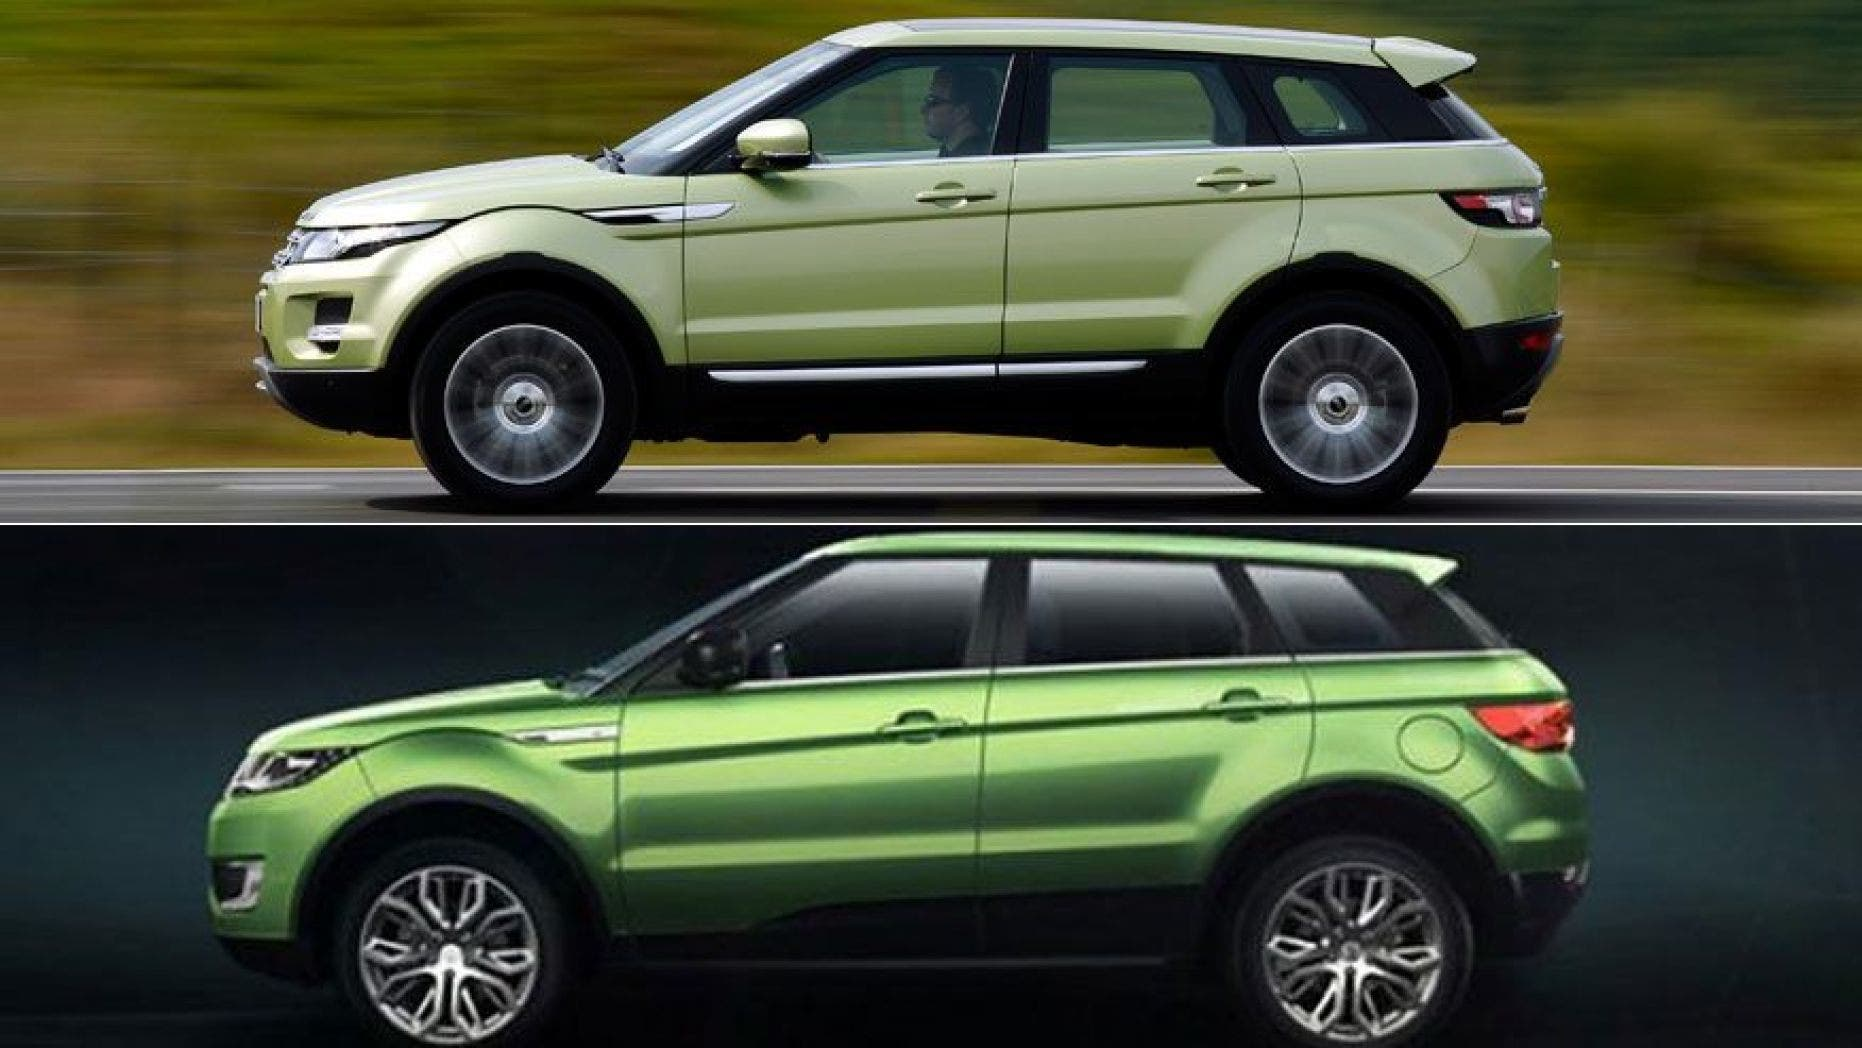 land rover wins the clone wars after court rules chinese automaker copied its evoque suv fox news. Black Bedroom Furniture Sets. Home Design Ideas